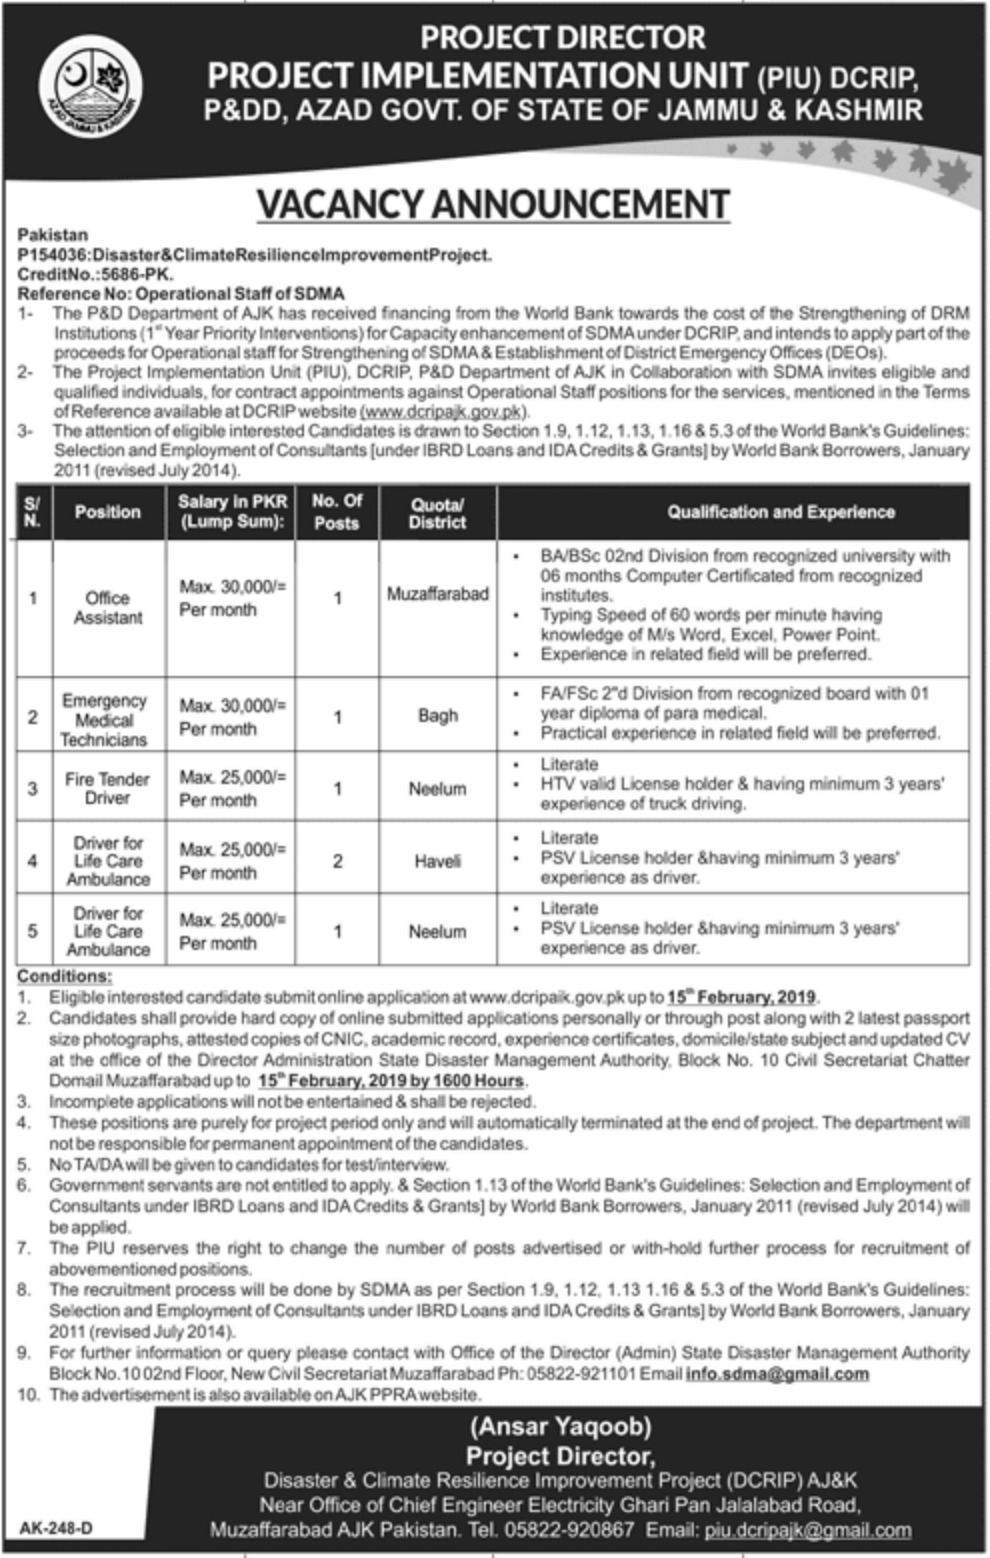 AJK Planning & Development Department Jobs 2019 P&DD Latest